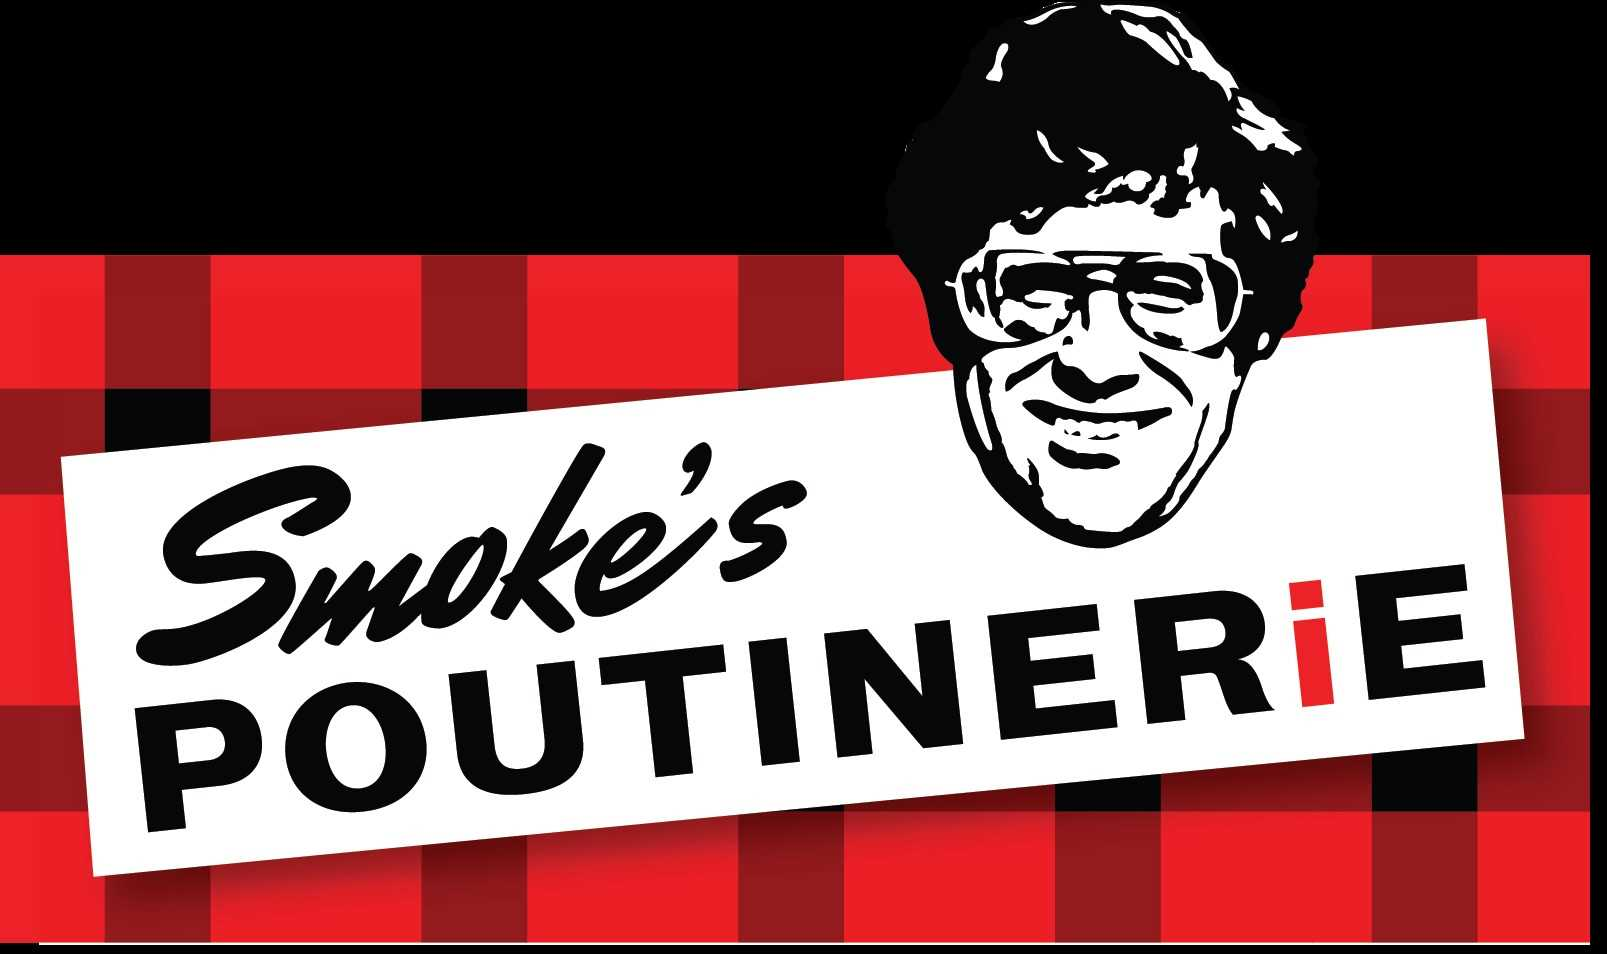 Great Downtown Location For Well Established Smokes Poutinerie Franchise. Easy To Operate & Very Profitable Fast Food Business. Popular Spot For The Students Of Guelph University. Offering A Broad Menu Of Creative Poutine Dishes. Net Sale Is $480,000 In 2018. Cheap Rent $2800 Inc, Tmi, Utilities, $1,000 Im, Food Cost 24%, Long Lease, 2.5 +5+5, Wage For Employee $82,500, Which Can Be Saved. Tips $15,000 Yr Not Including Income. Net Income $126,000/Yr.